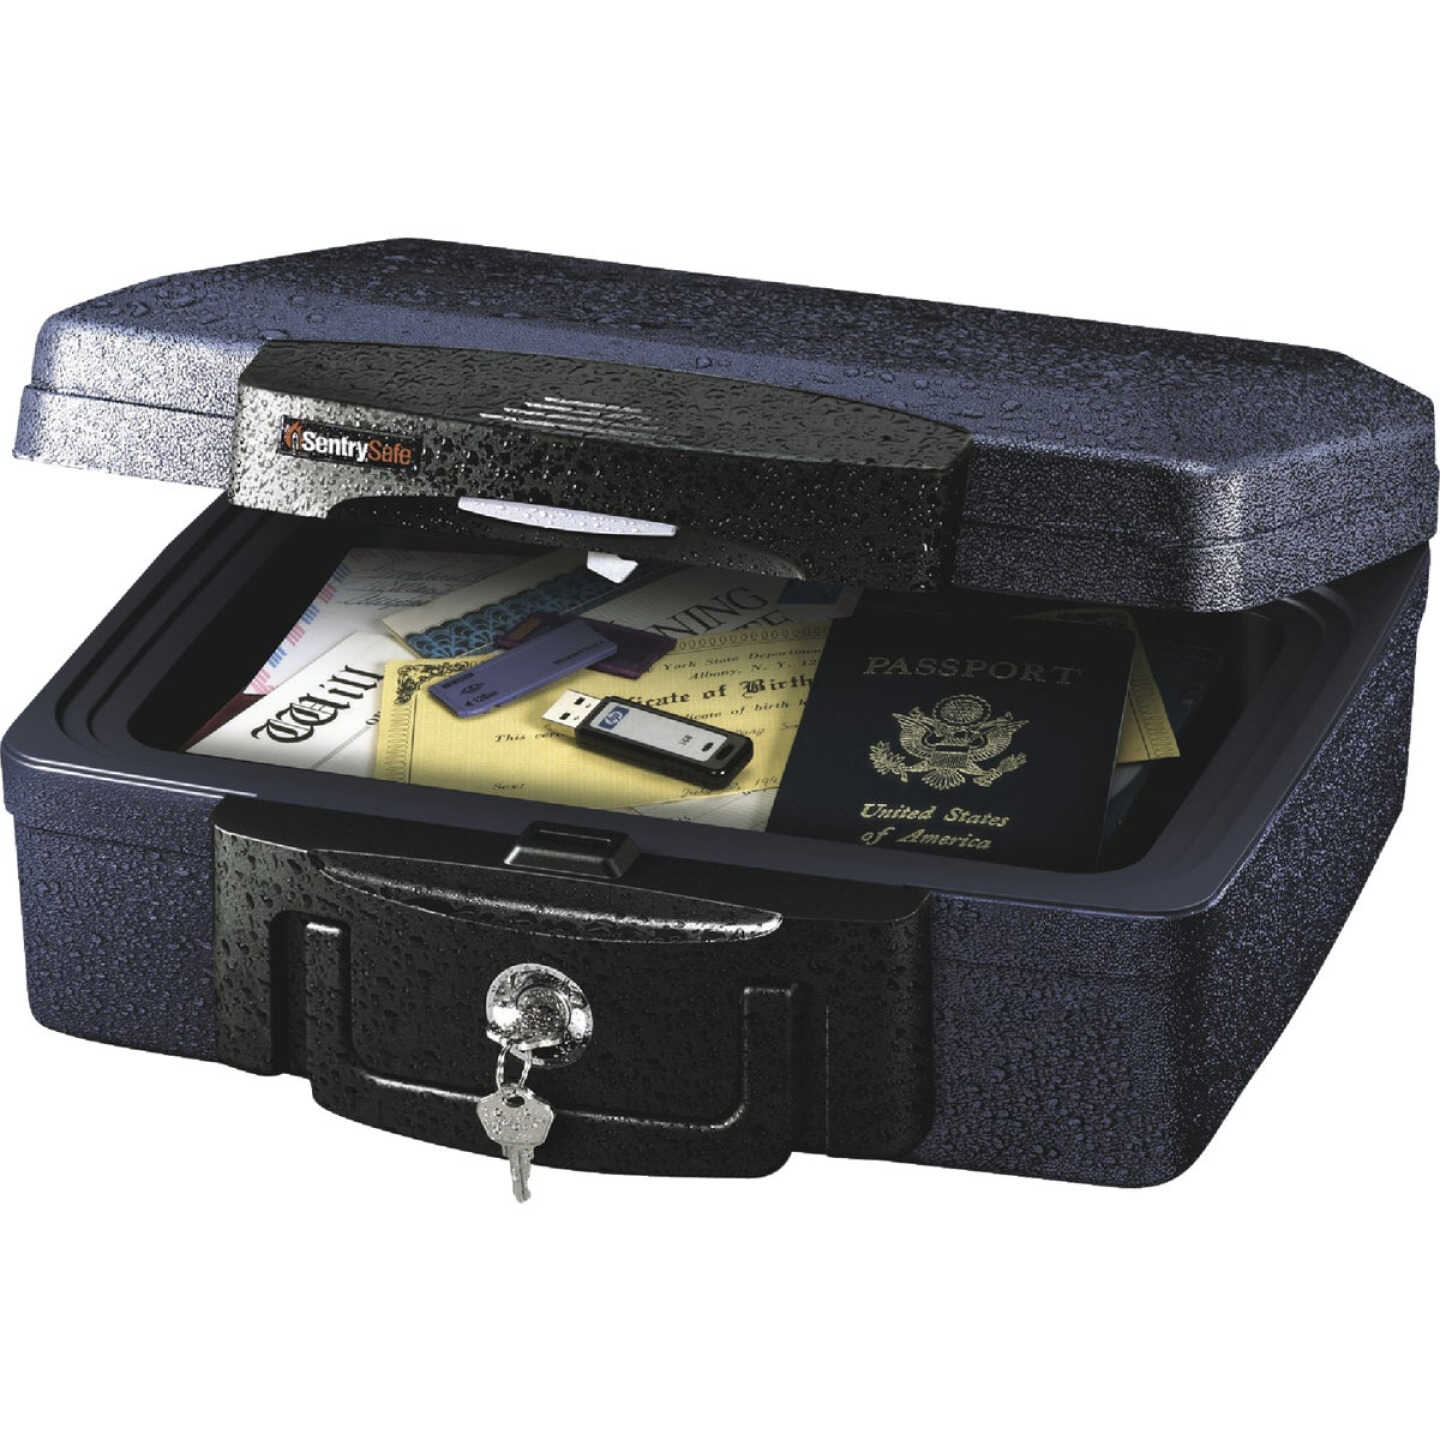 Sentry Safe Key Lock Steel 13 In. Deep Security Chest Image 1